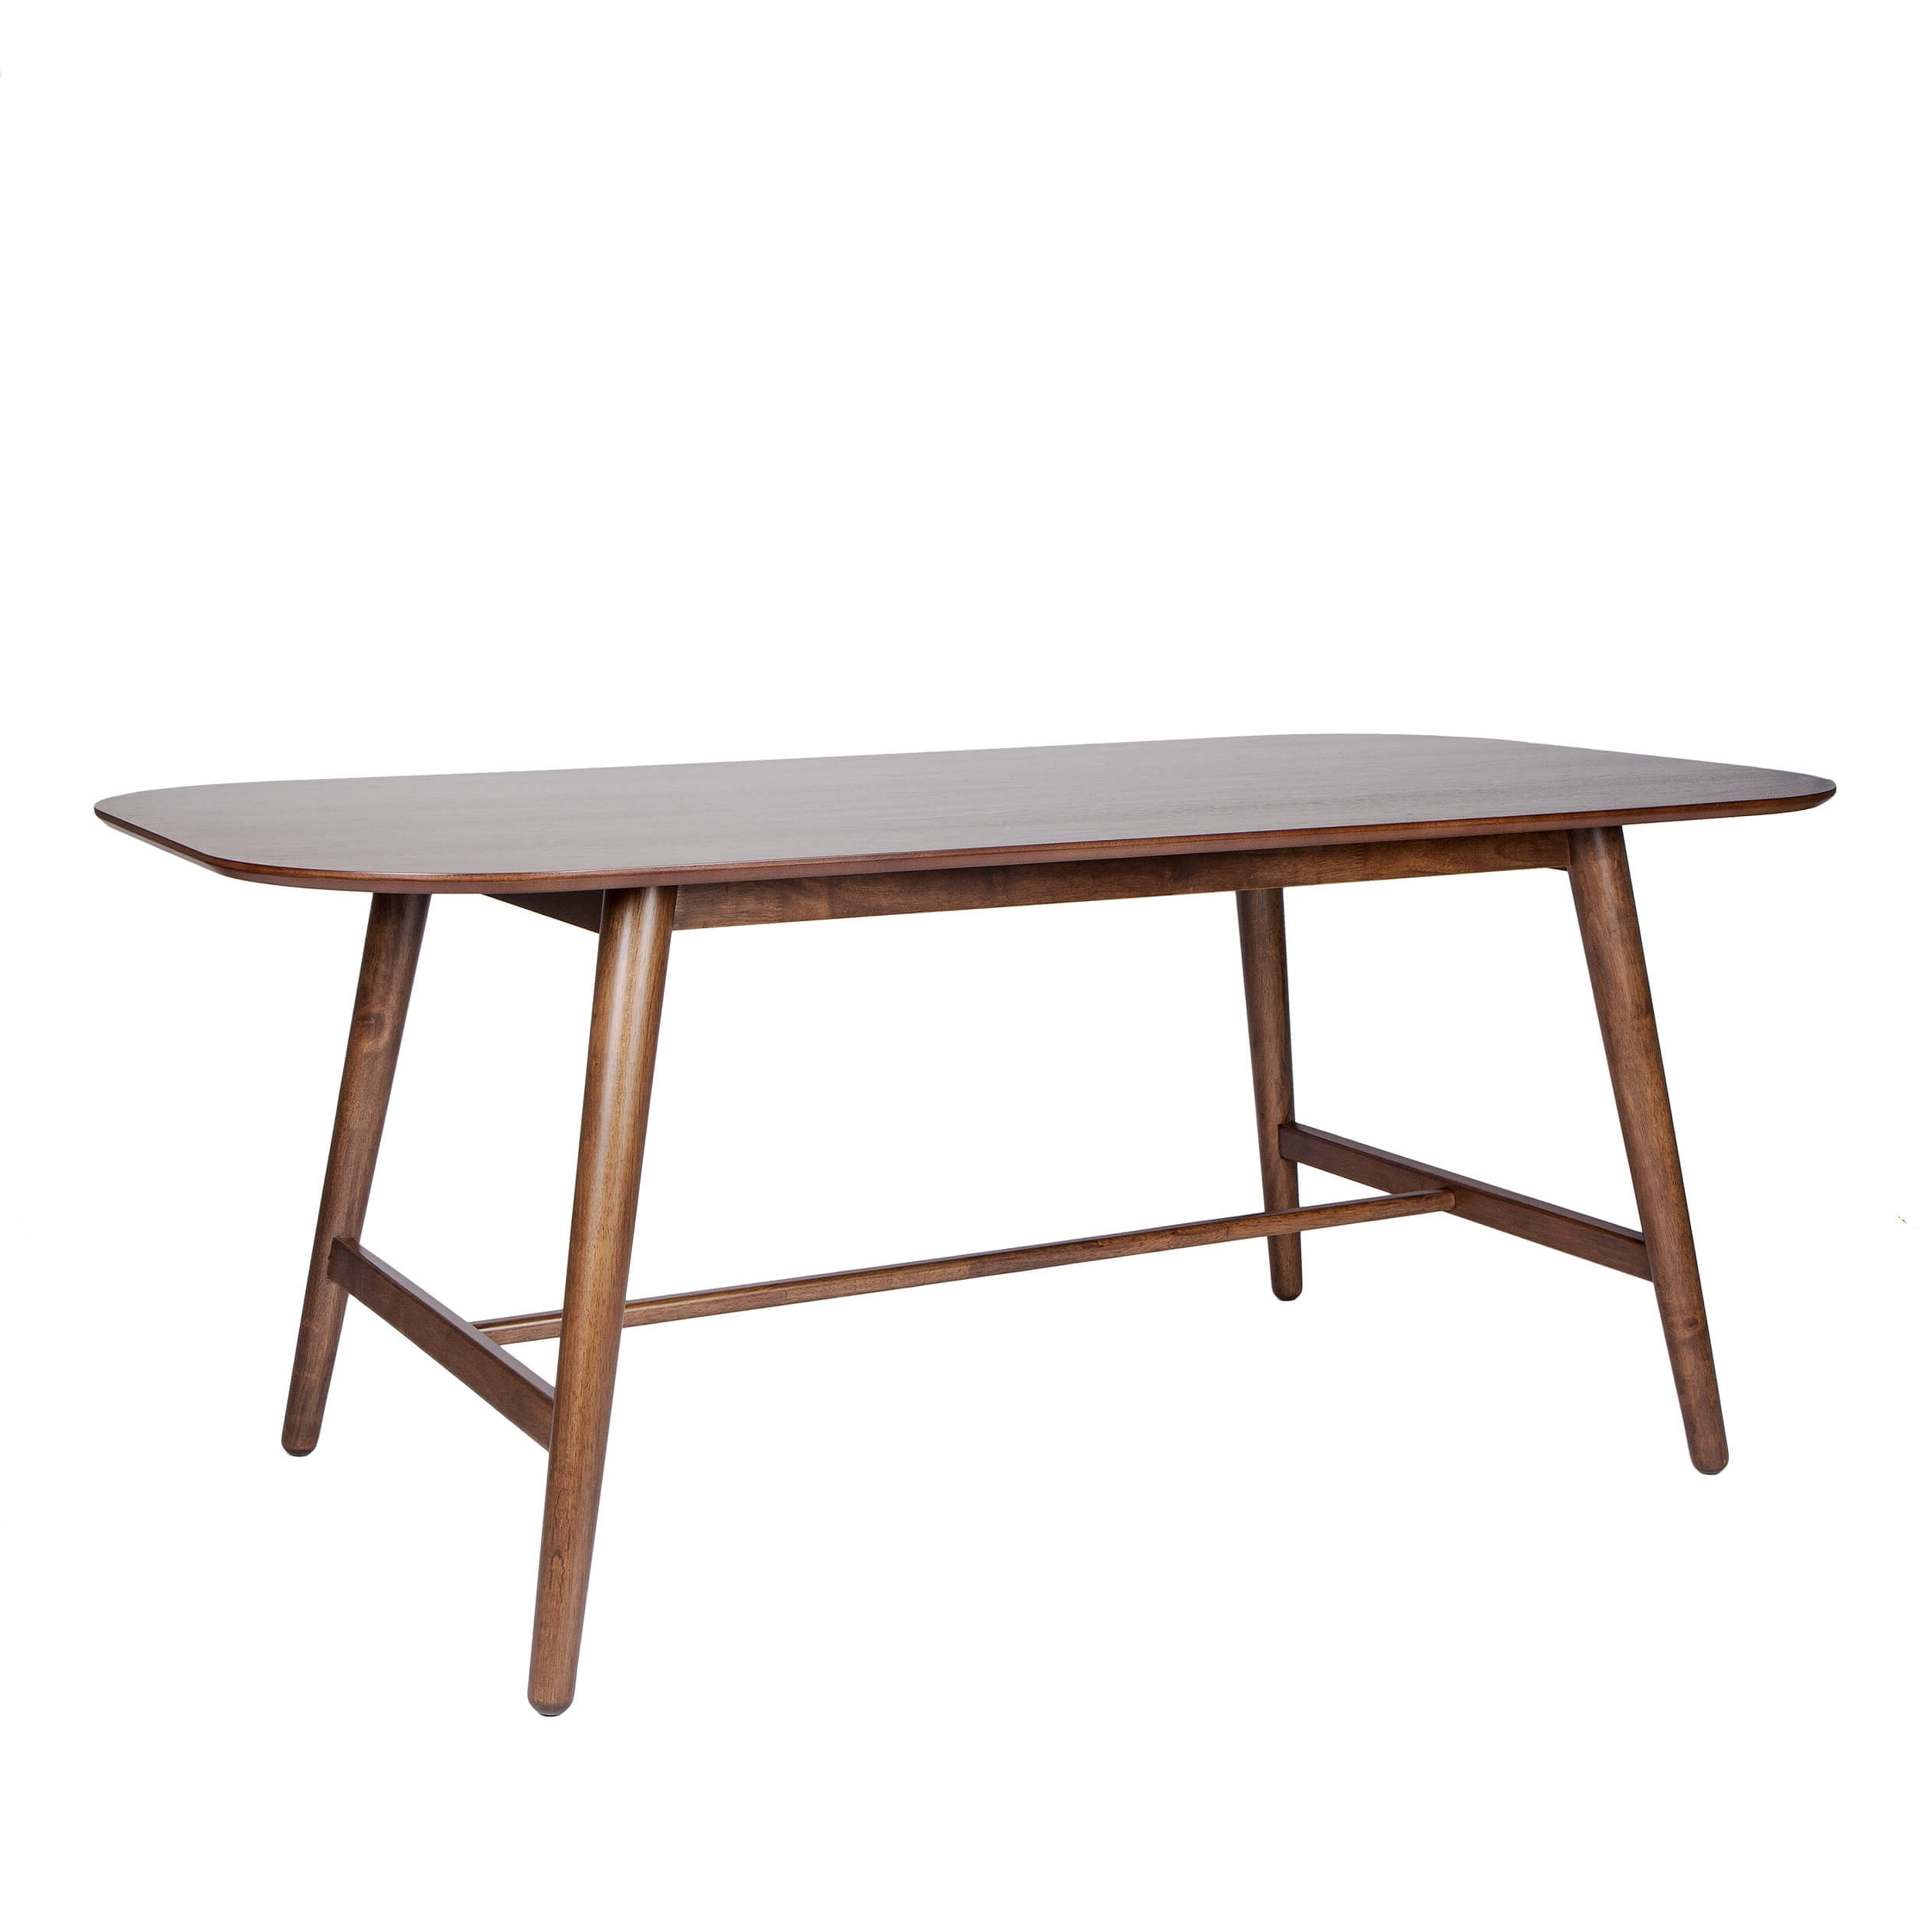 Danish Dining Tables Intended For Most Recent Danish Dining Table With Rounded Corners – Monty (Gallery 1 of 25)